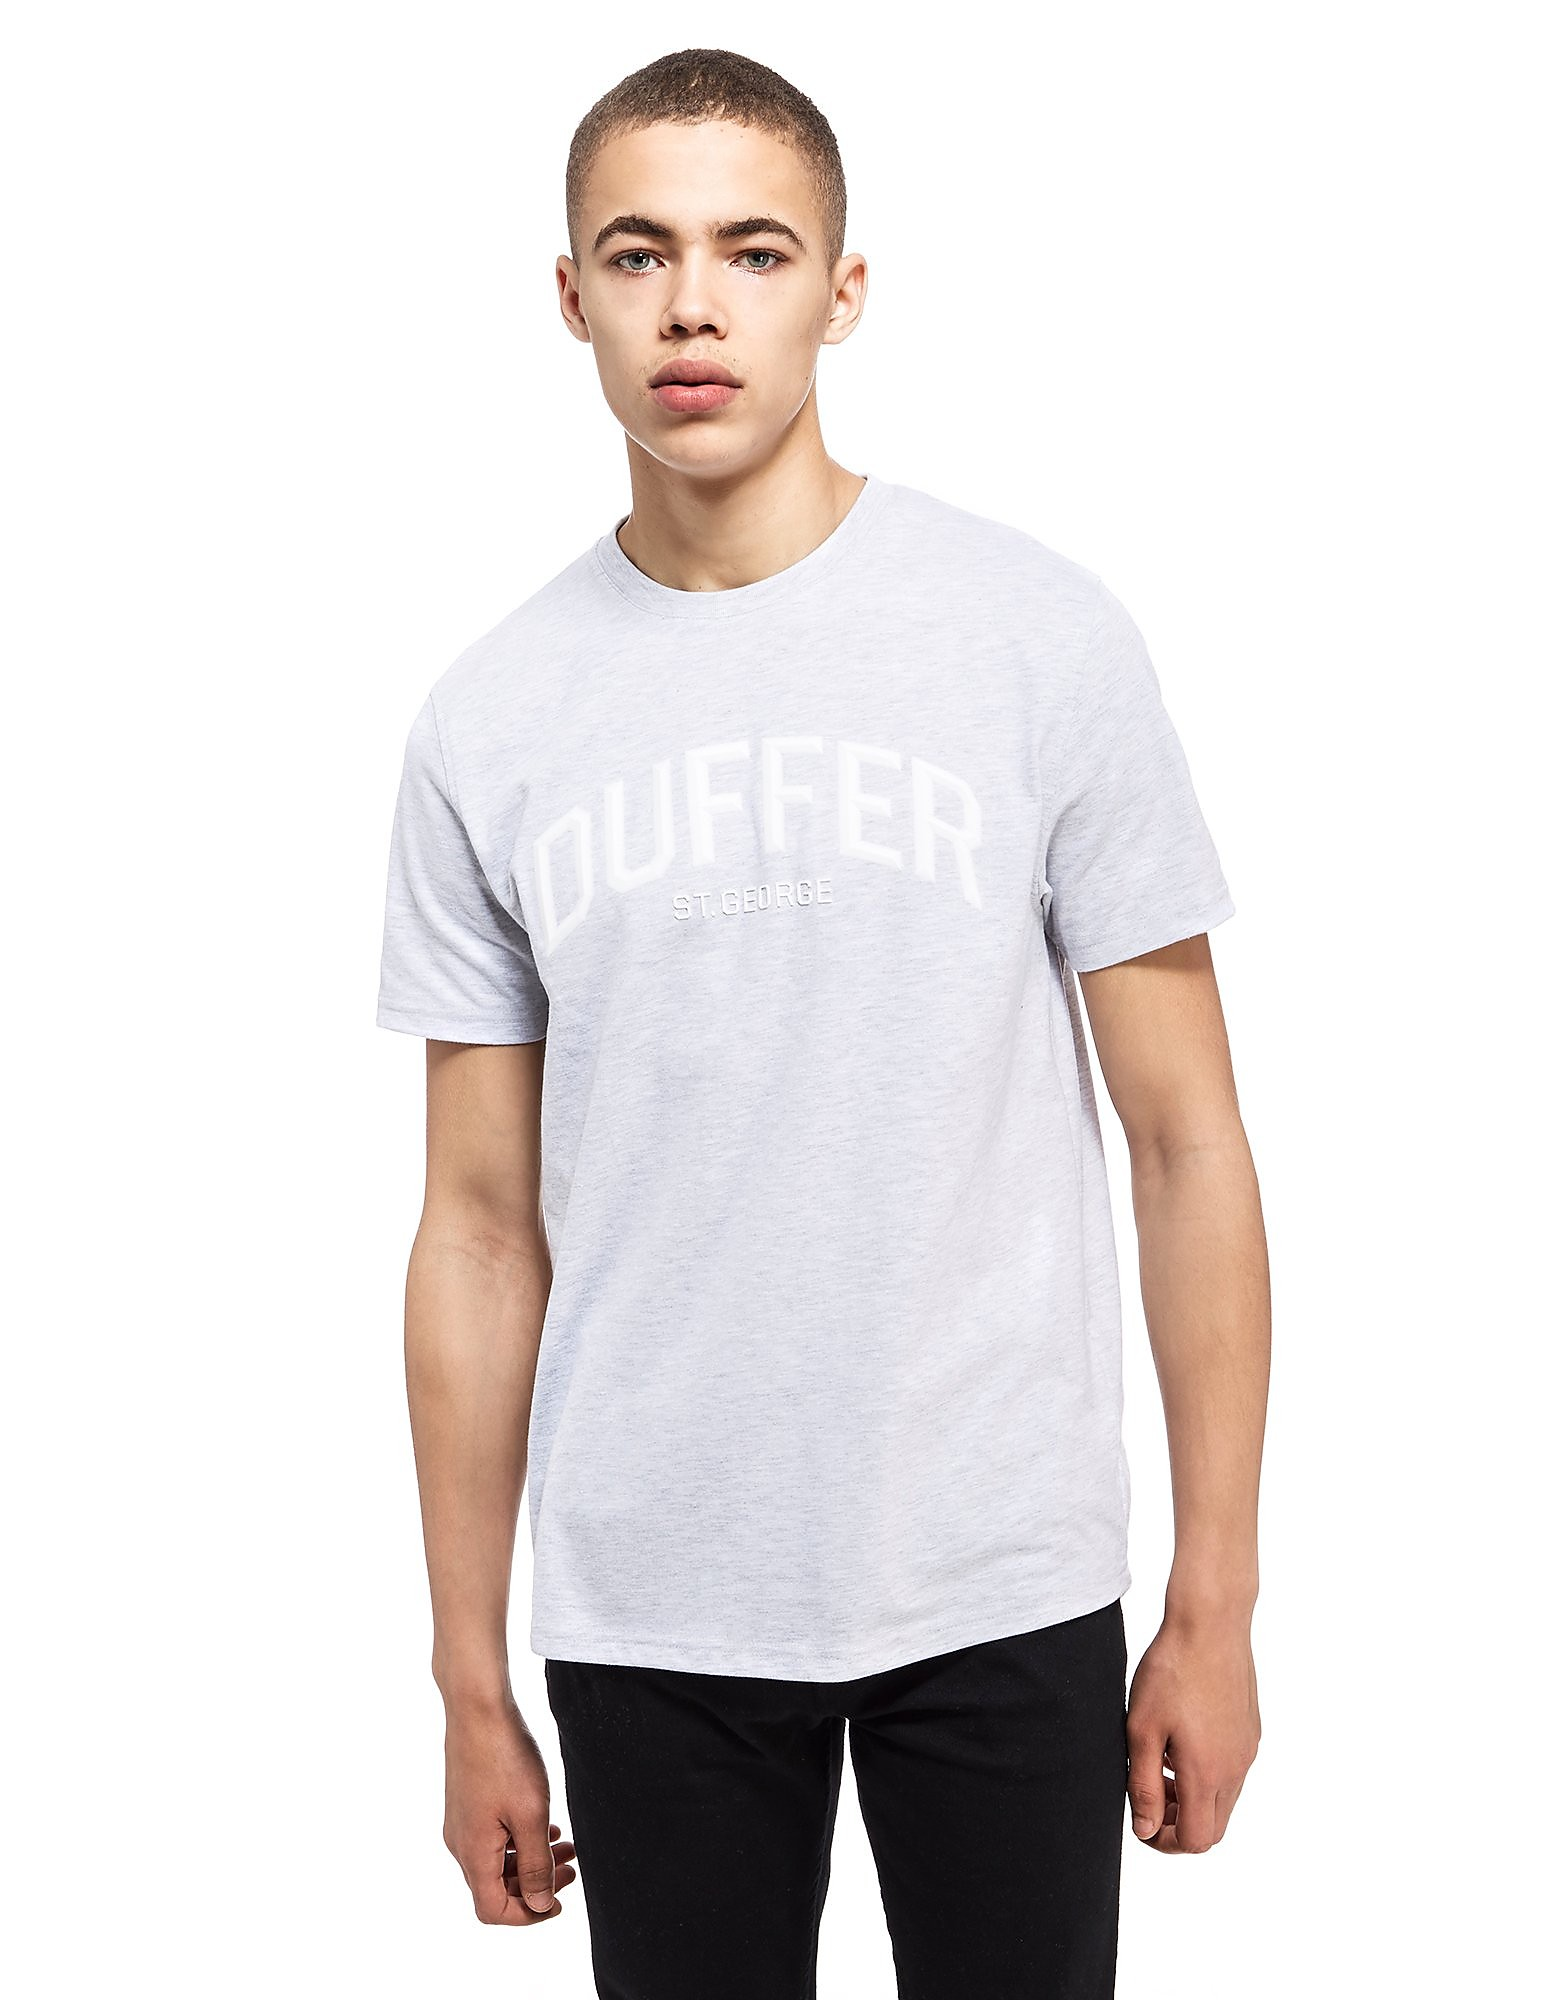 Duffer of St George Input T-Shirt